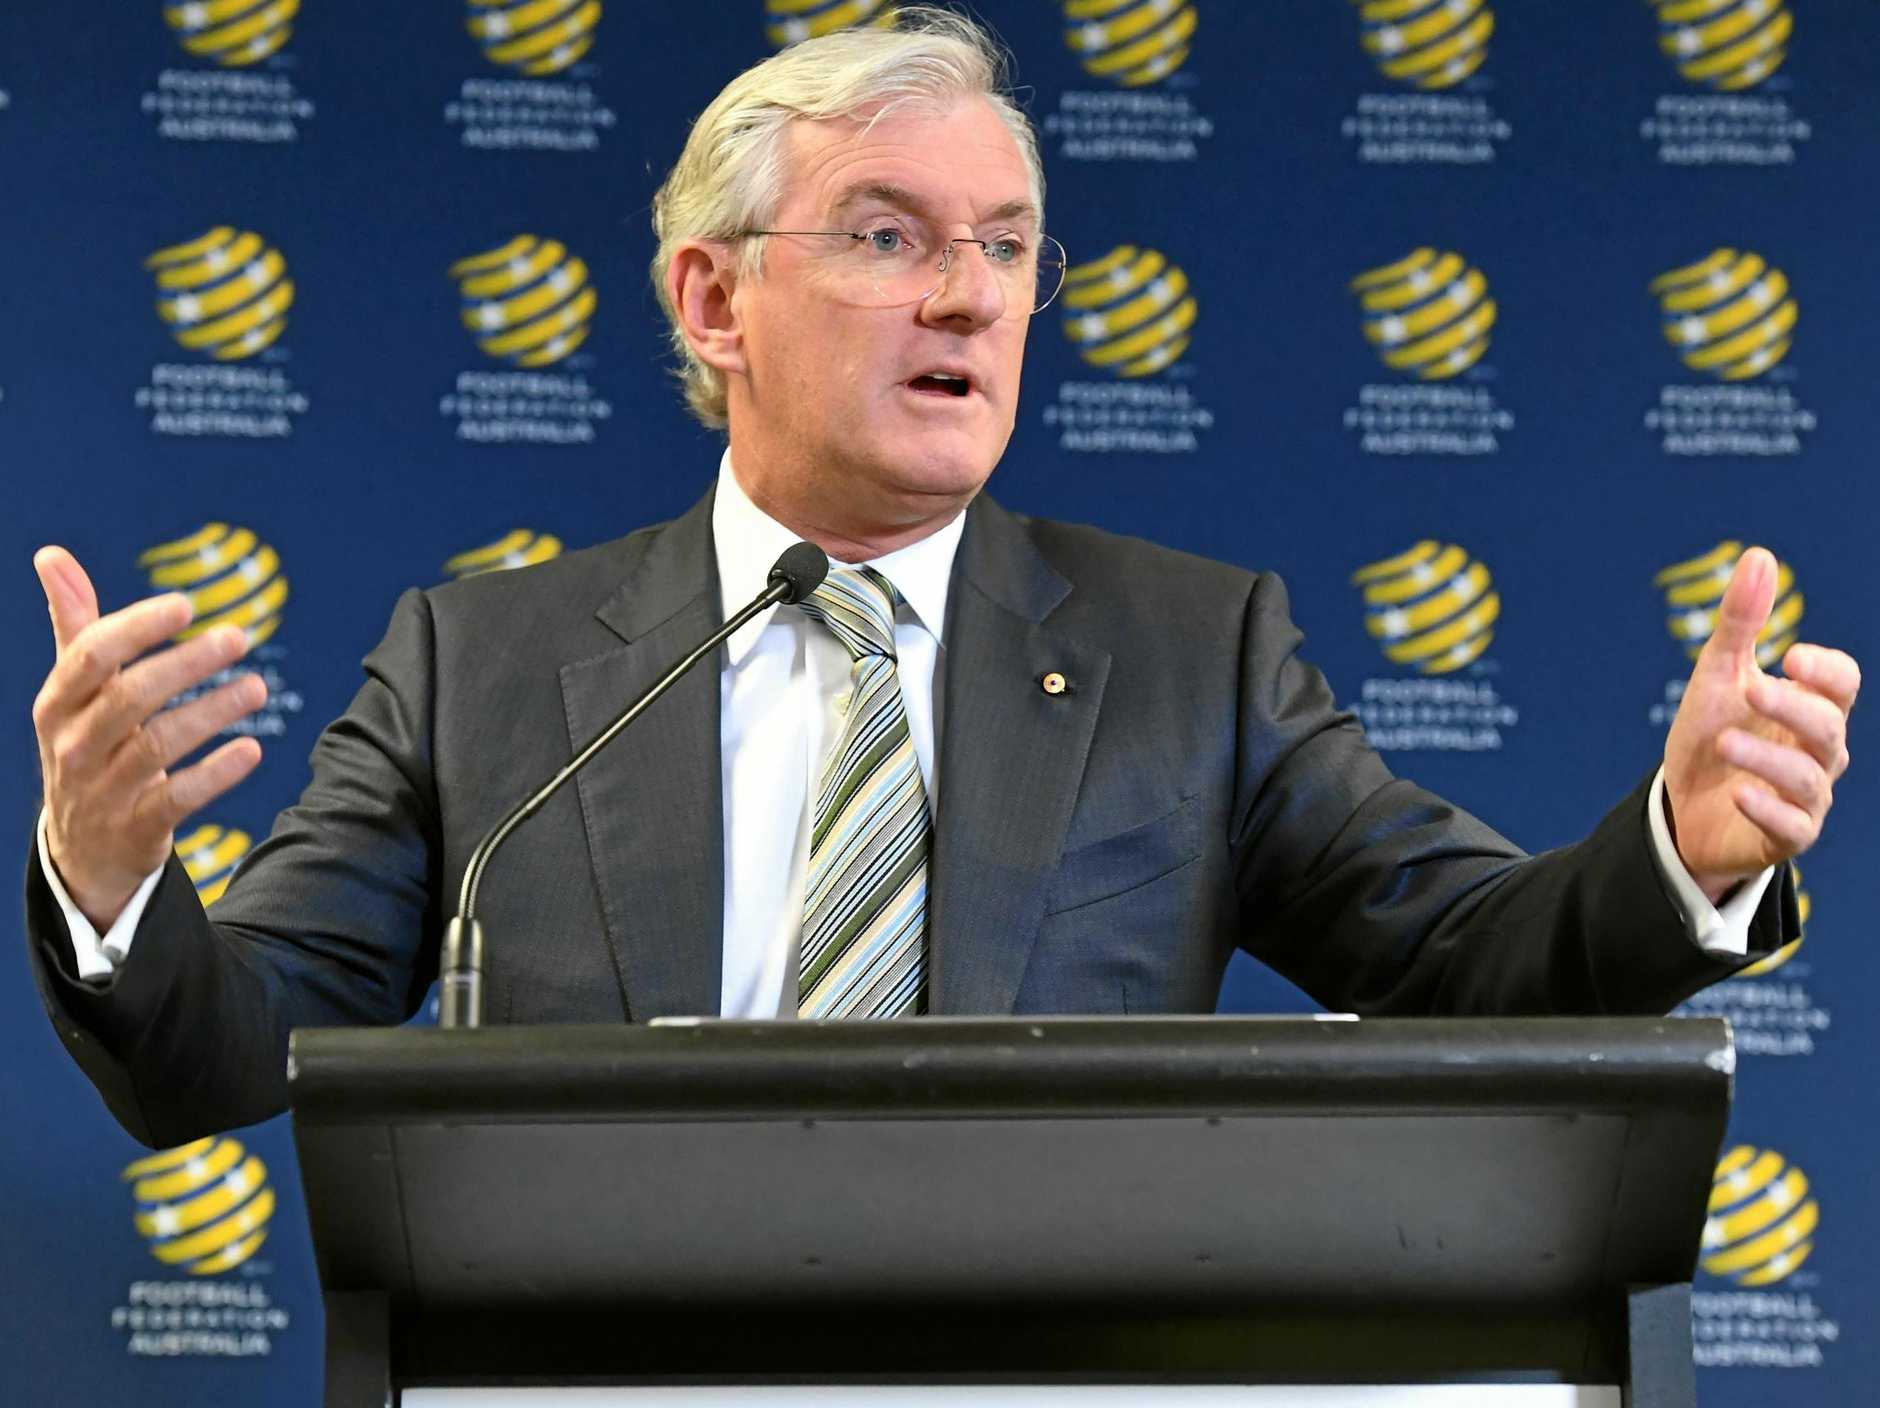 Outgoing FFA chairman Steven Lowy has fought the FIFA-backed changes. Picture: Peter Rae/AAP